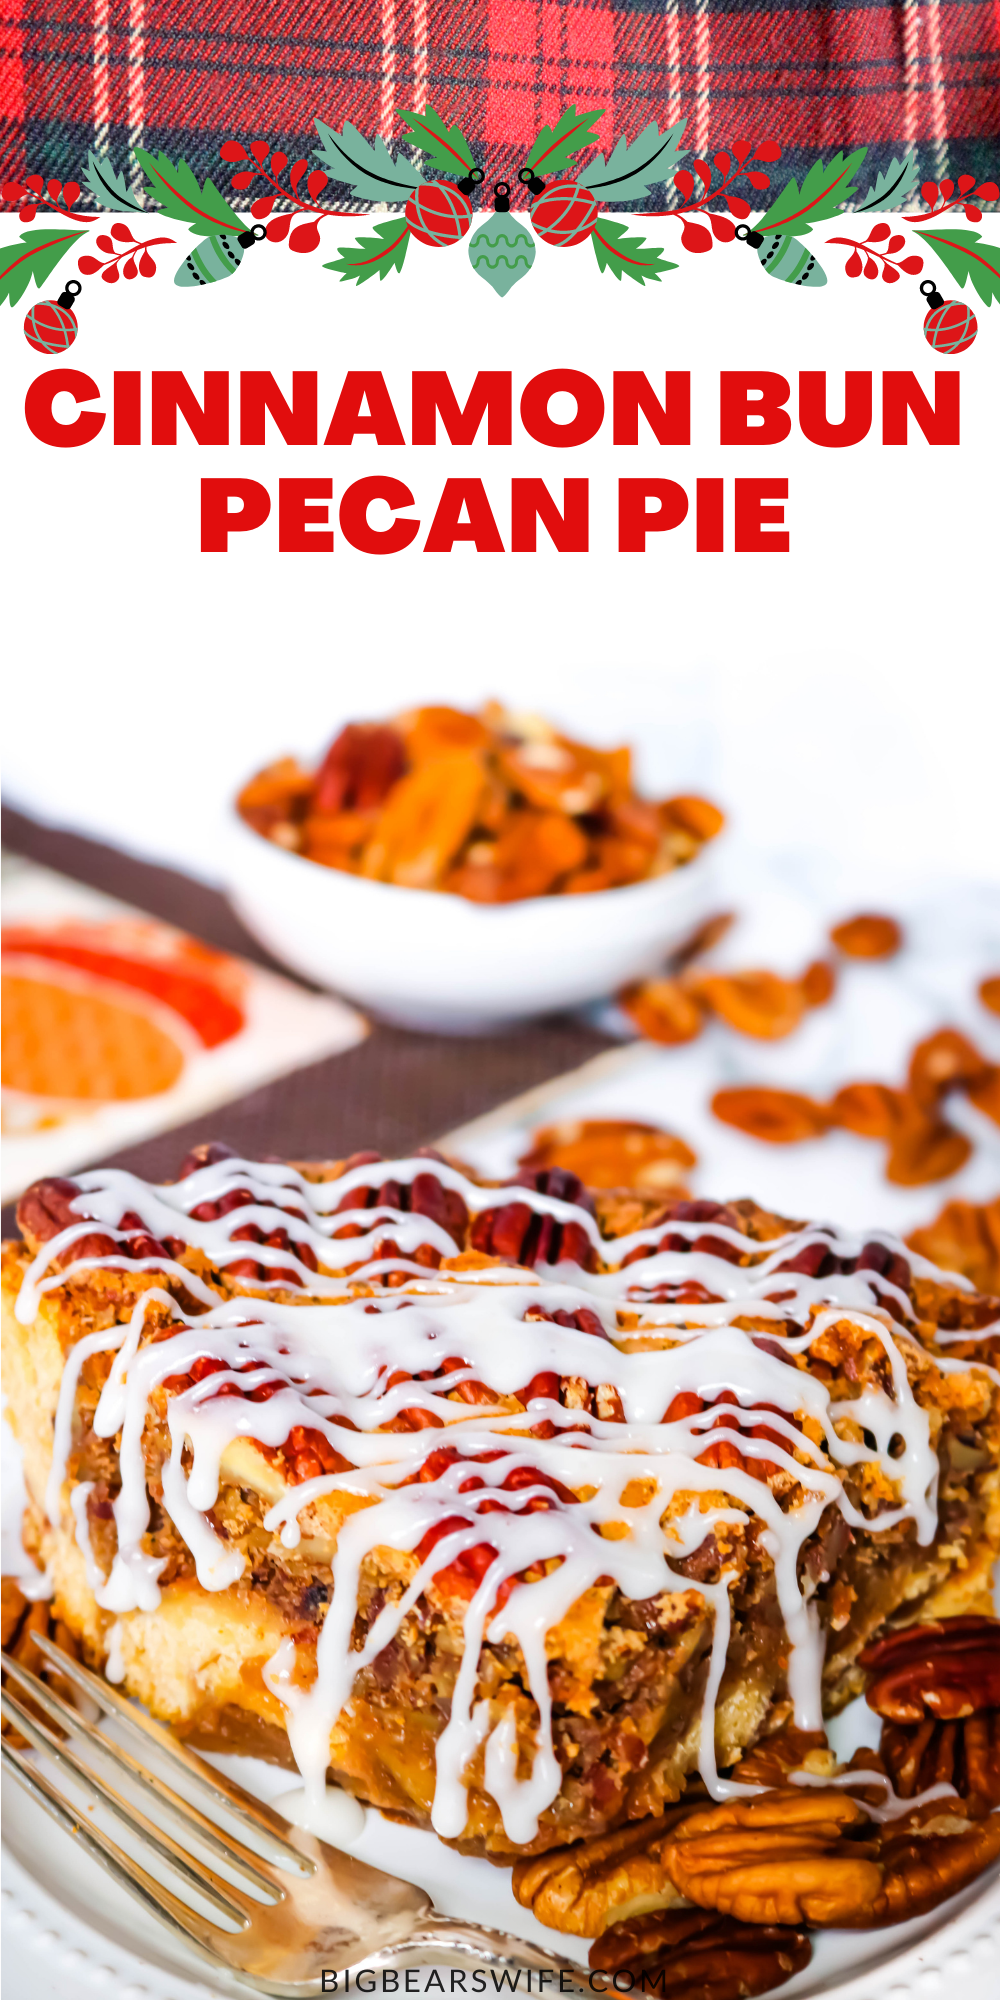 This Cinnamon Bun Pecan Pie has a cinnamon bun pie crust and an amazing and easy homemade pecan pie filling! Drizzle it with cream cheese frosting and you've got the perfect marriage of cinnamon buns and pecan pie! via @bigbearswife